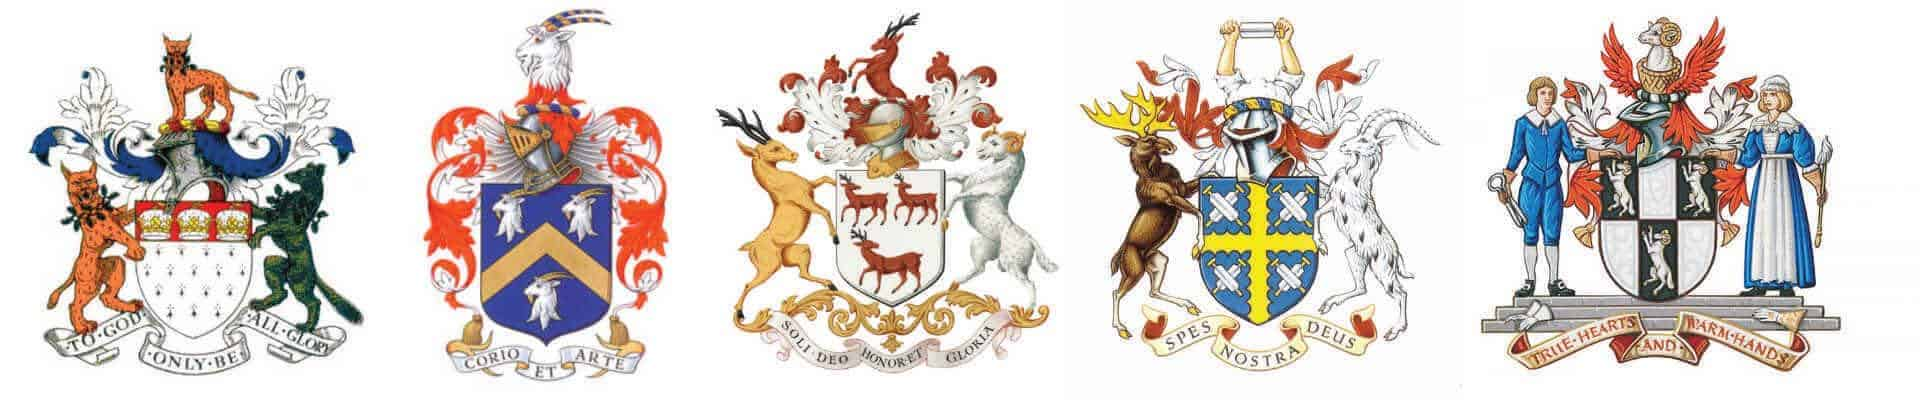 worshipful livery crests small